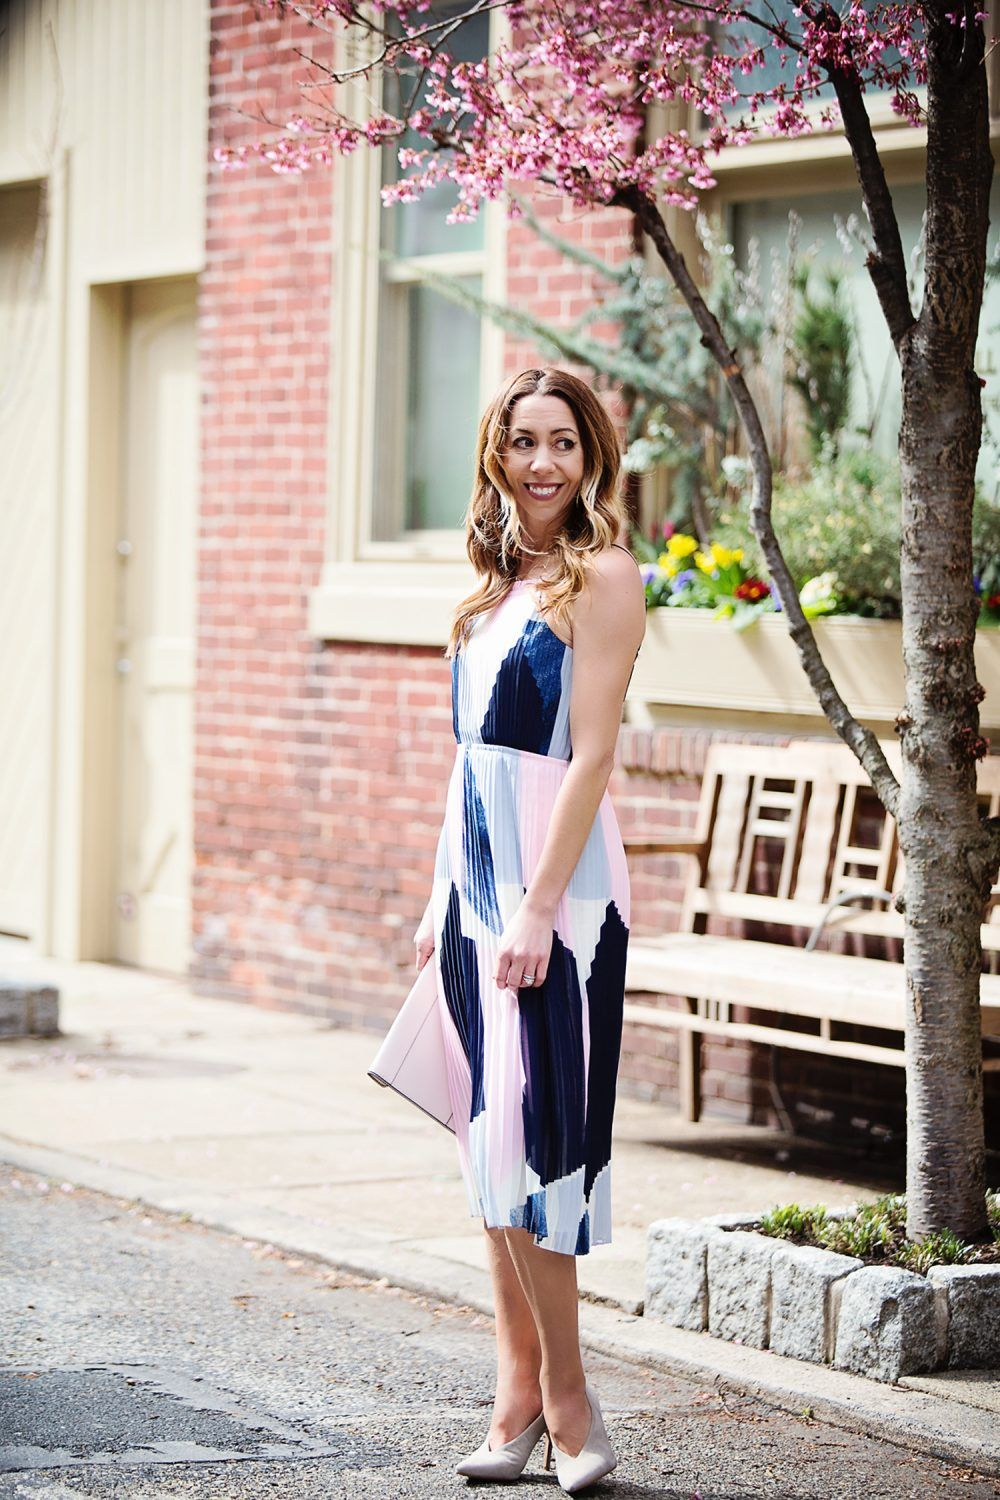 Spring Summer Wedding Guest Dresses The Motherchic Wedding Guest Dress Summer Wedding Guest Dress Cocktail Bridesmaid Dresses